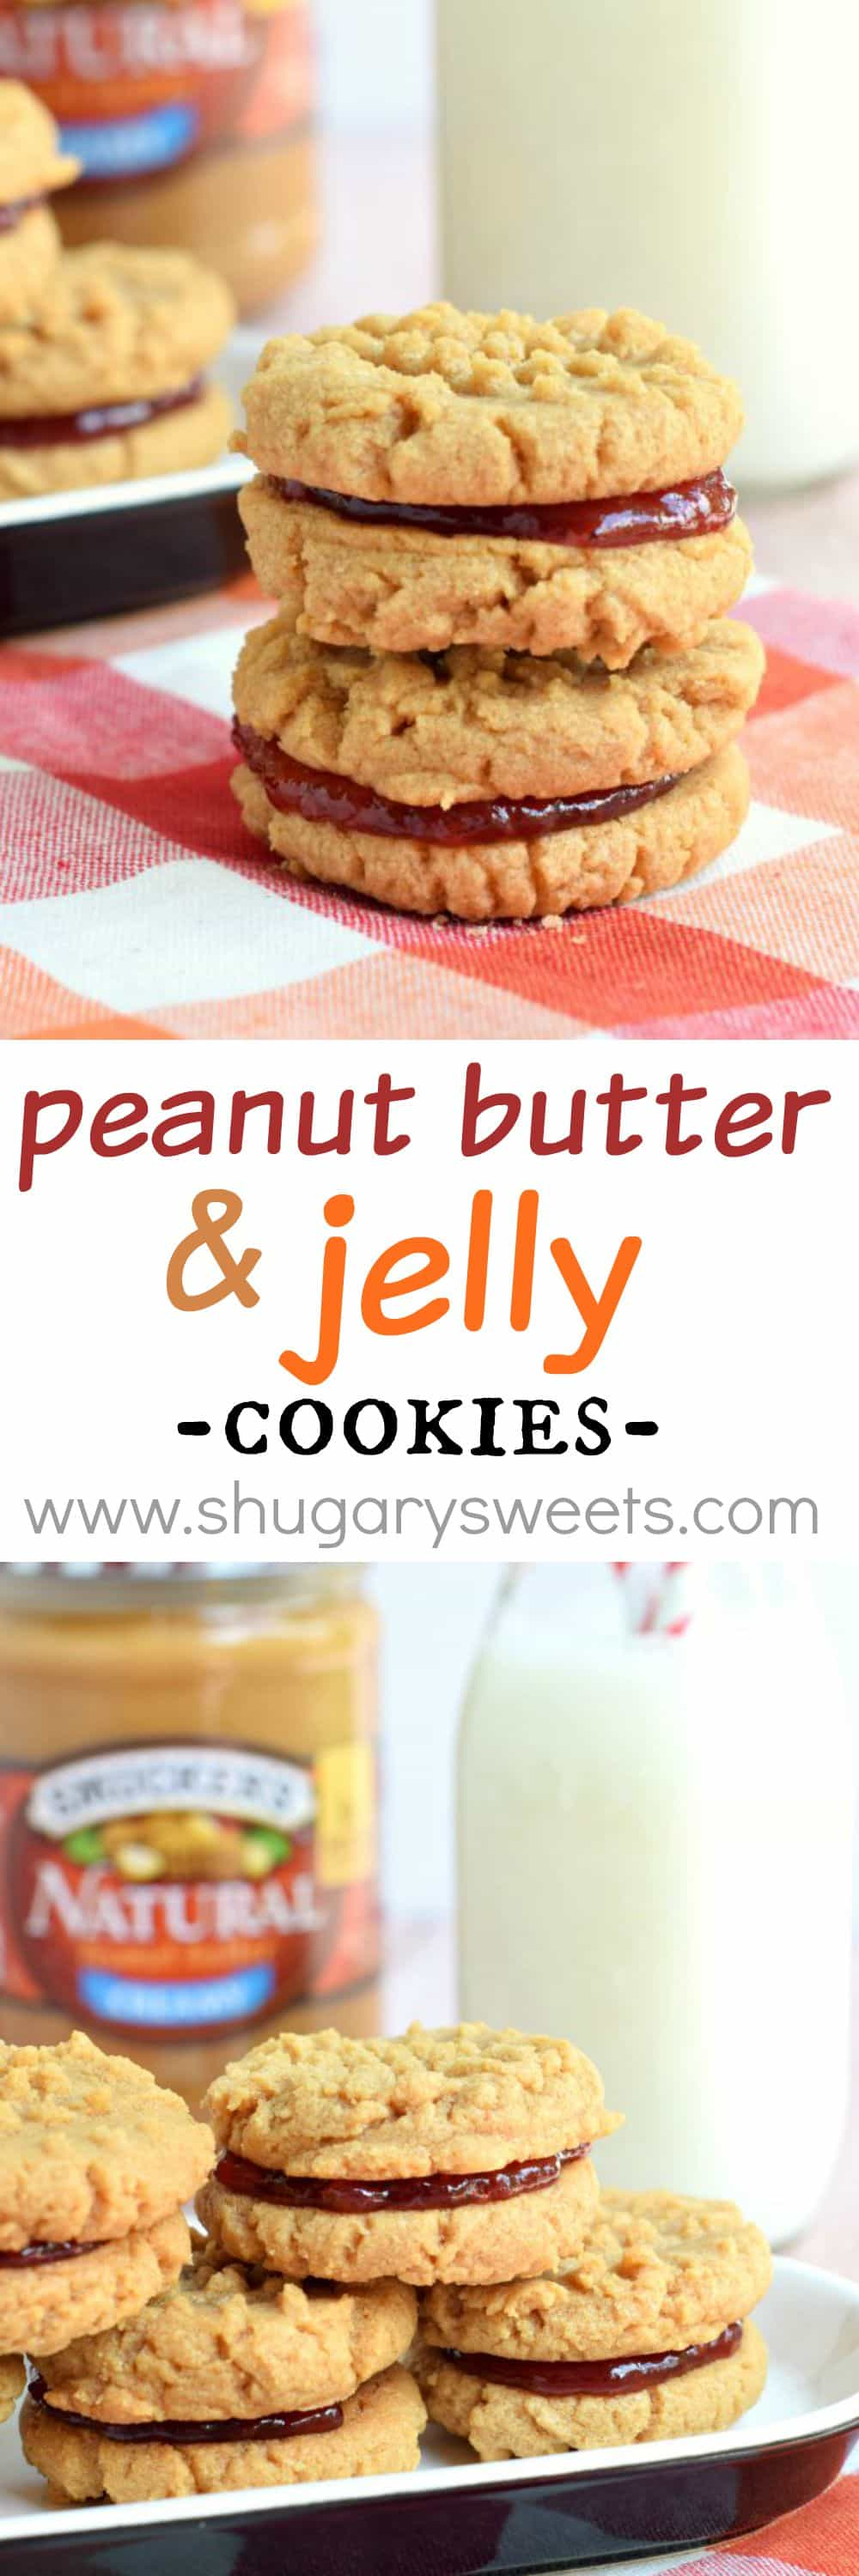 Making Peanut Butter Cookies With Natural Peanut Butter